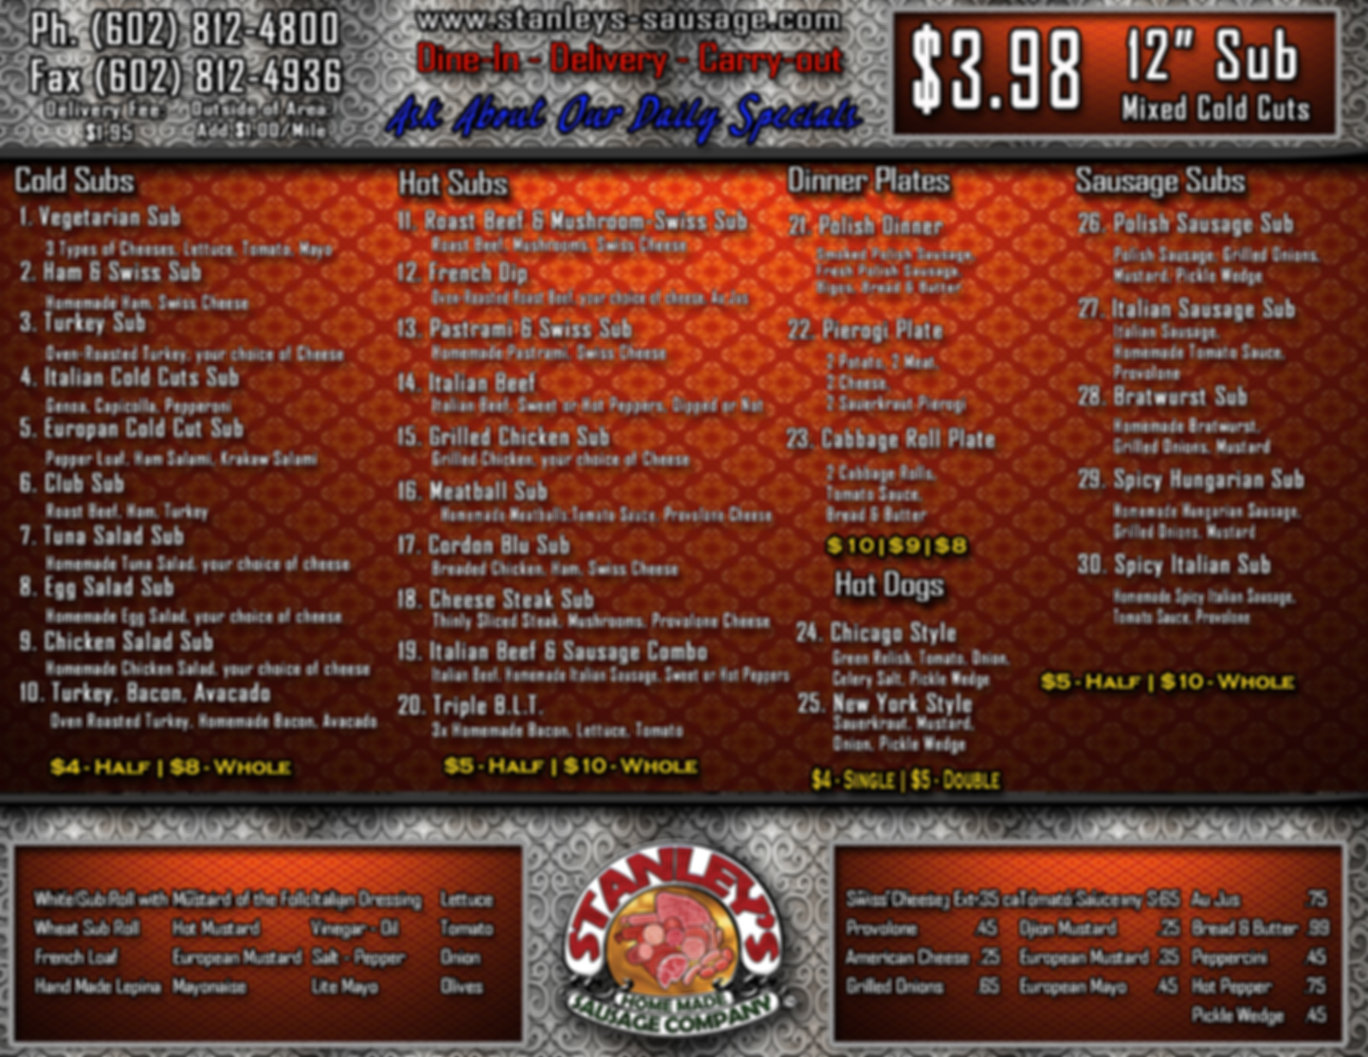 SHSCO INSIDE MENU 021918 (2).jpg